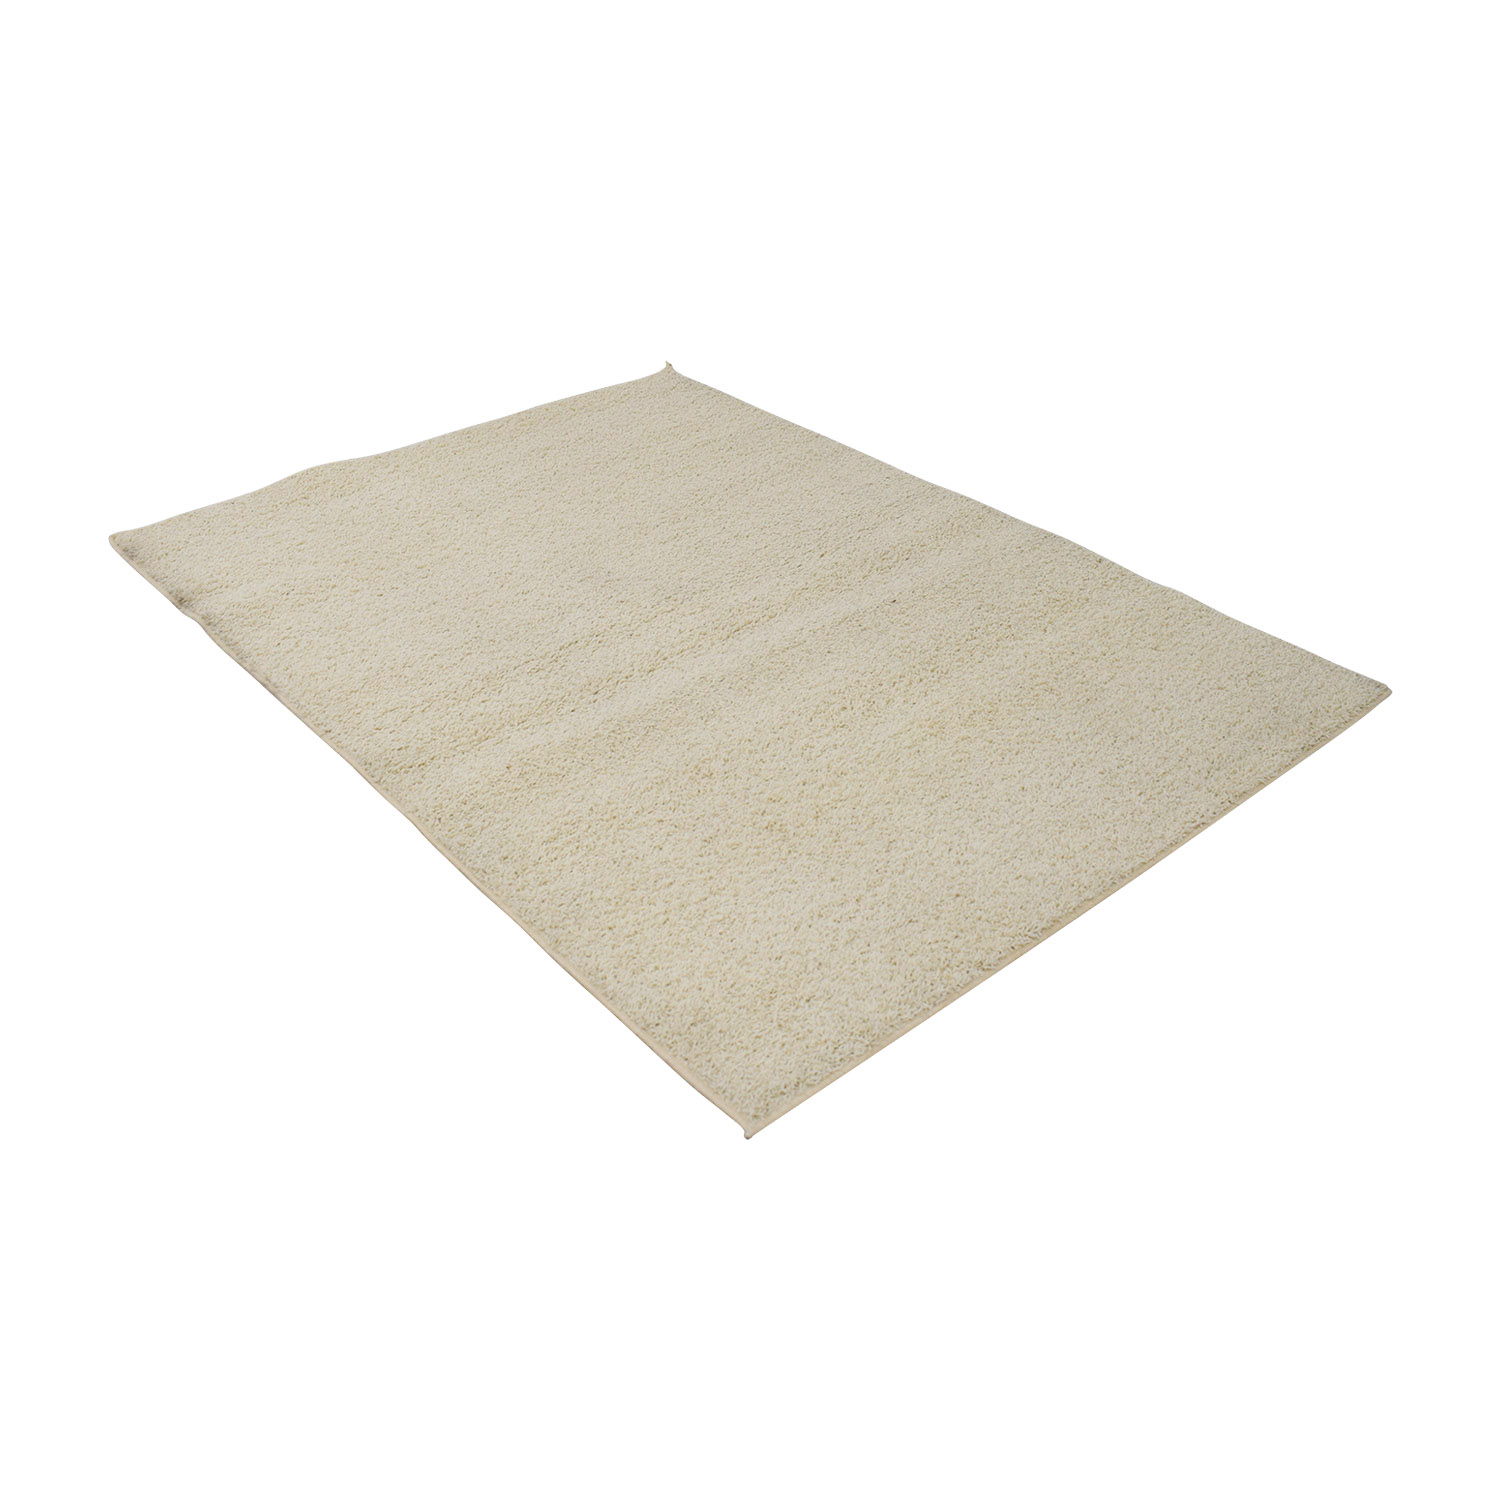 buy Bed Bath and Beyond White Rug Bed Bath and Beyond